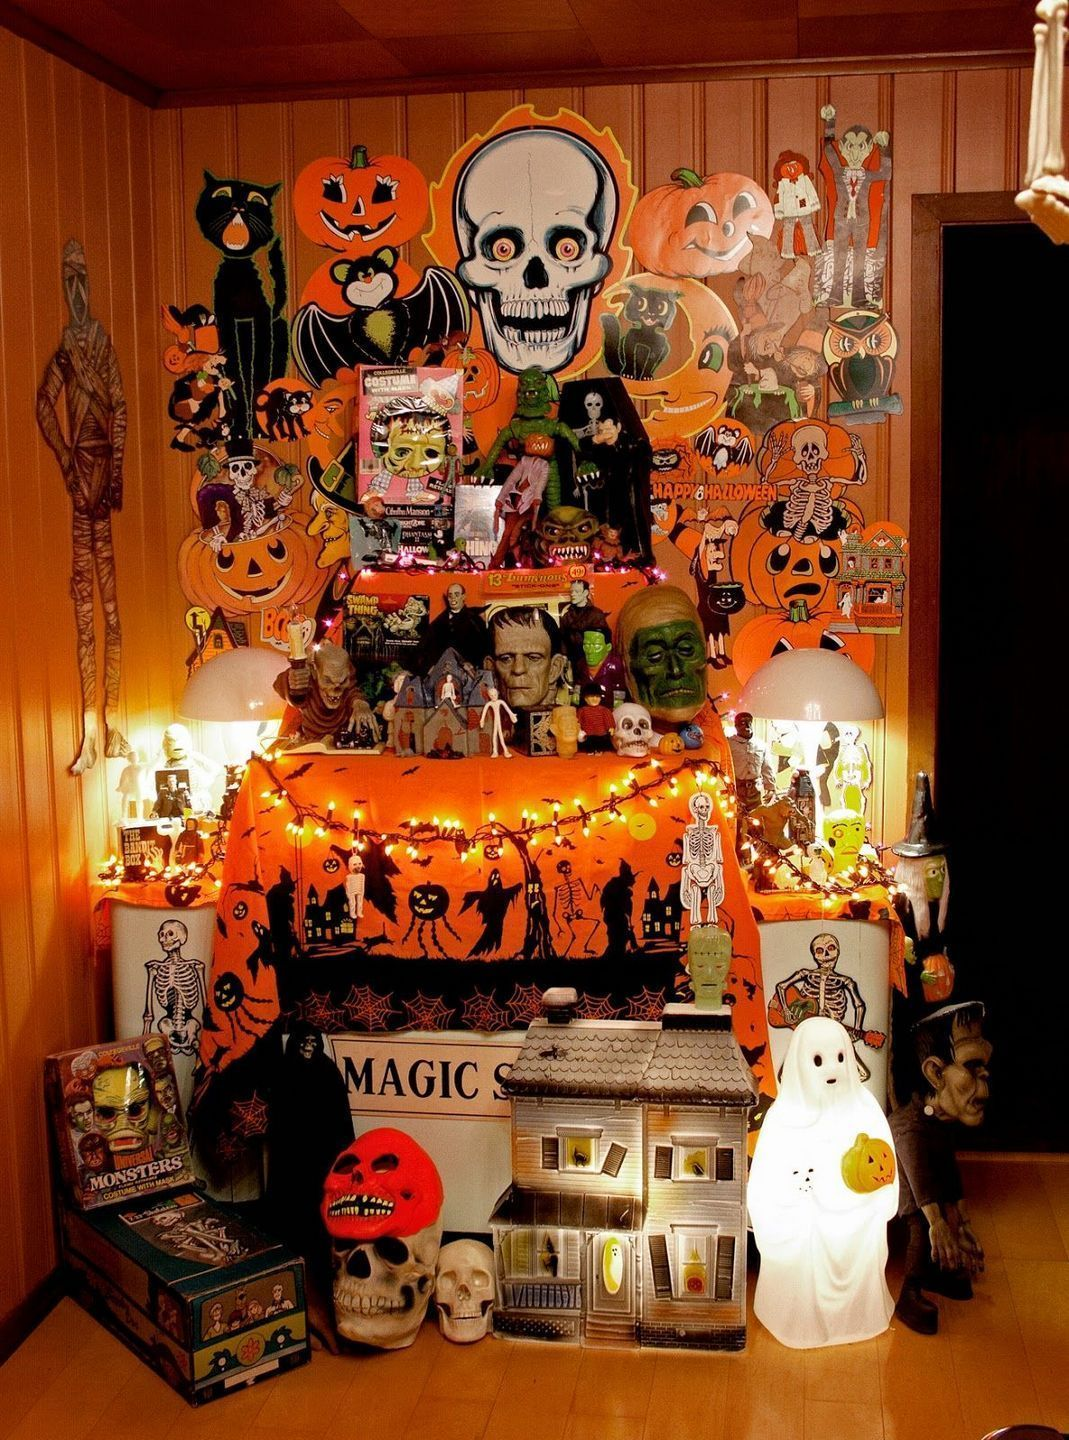 Vintage Halloween Decor With Toys Ornaments Ideas 13 Inspira Spaces Retro Halloween Vintage Halloween Vintage Halloween Decorations